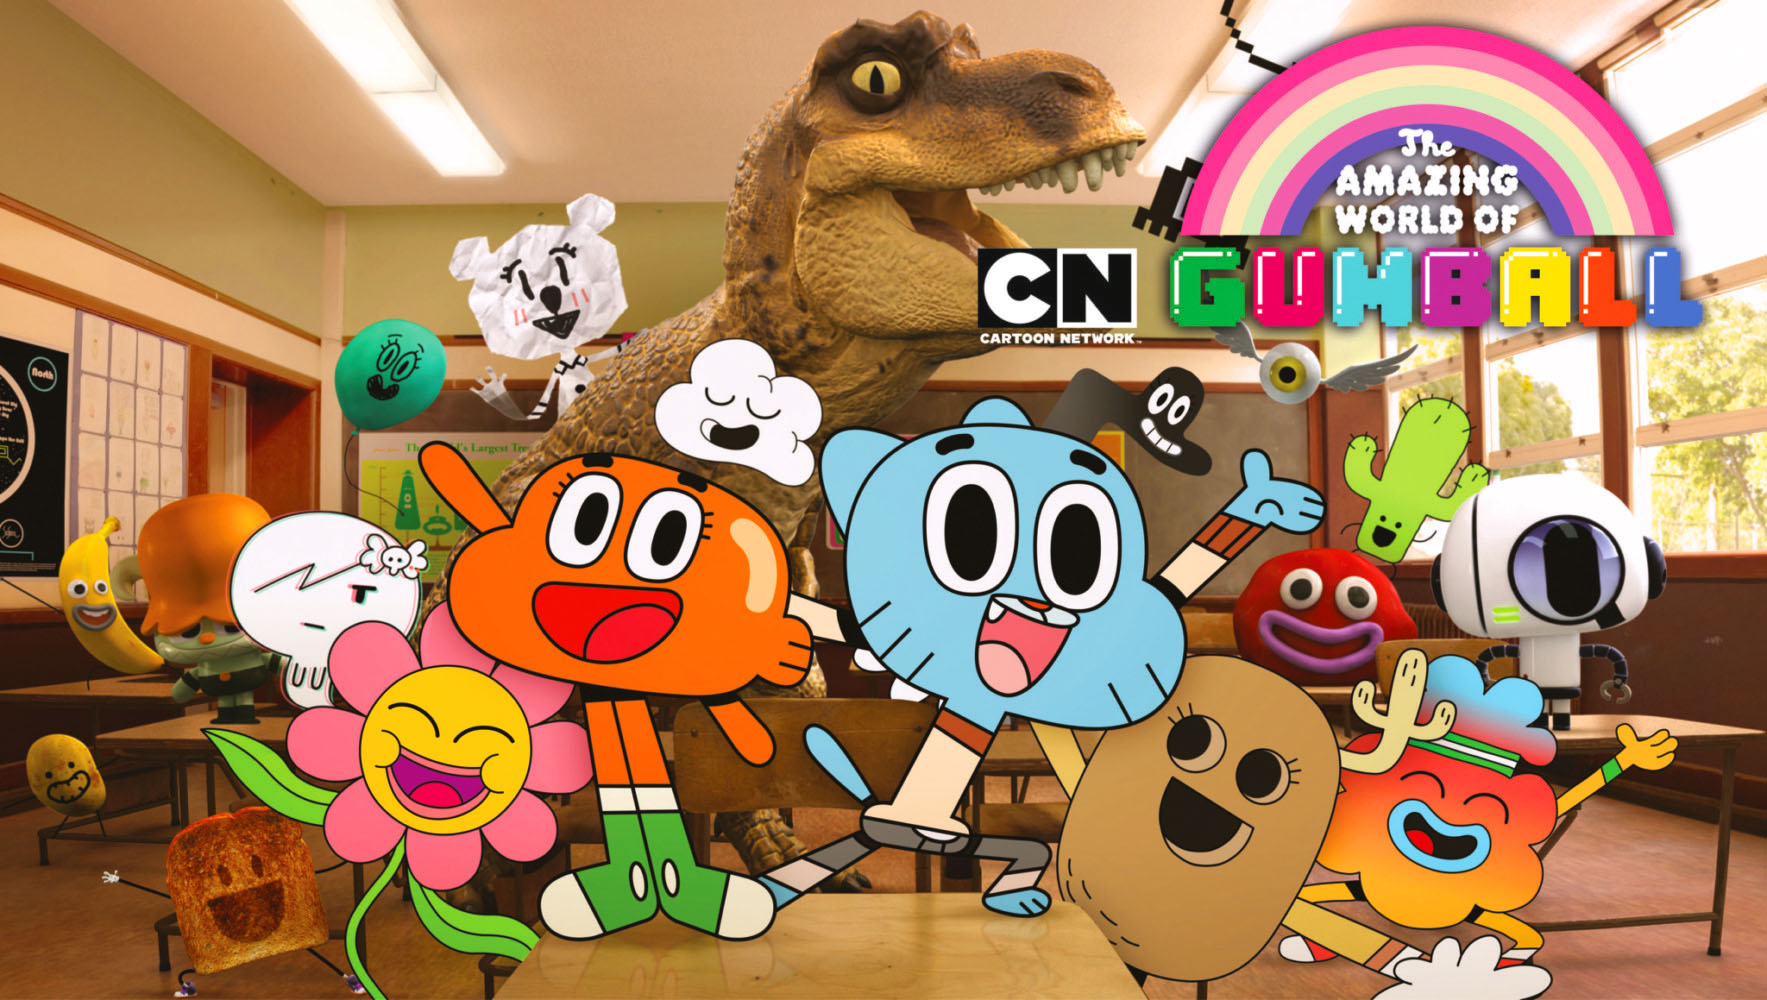 The Amazing world of Gumball – Season 3